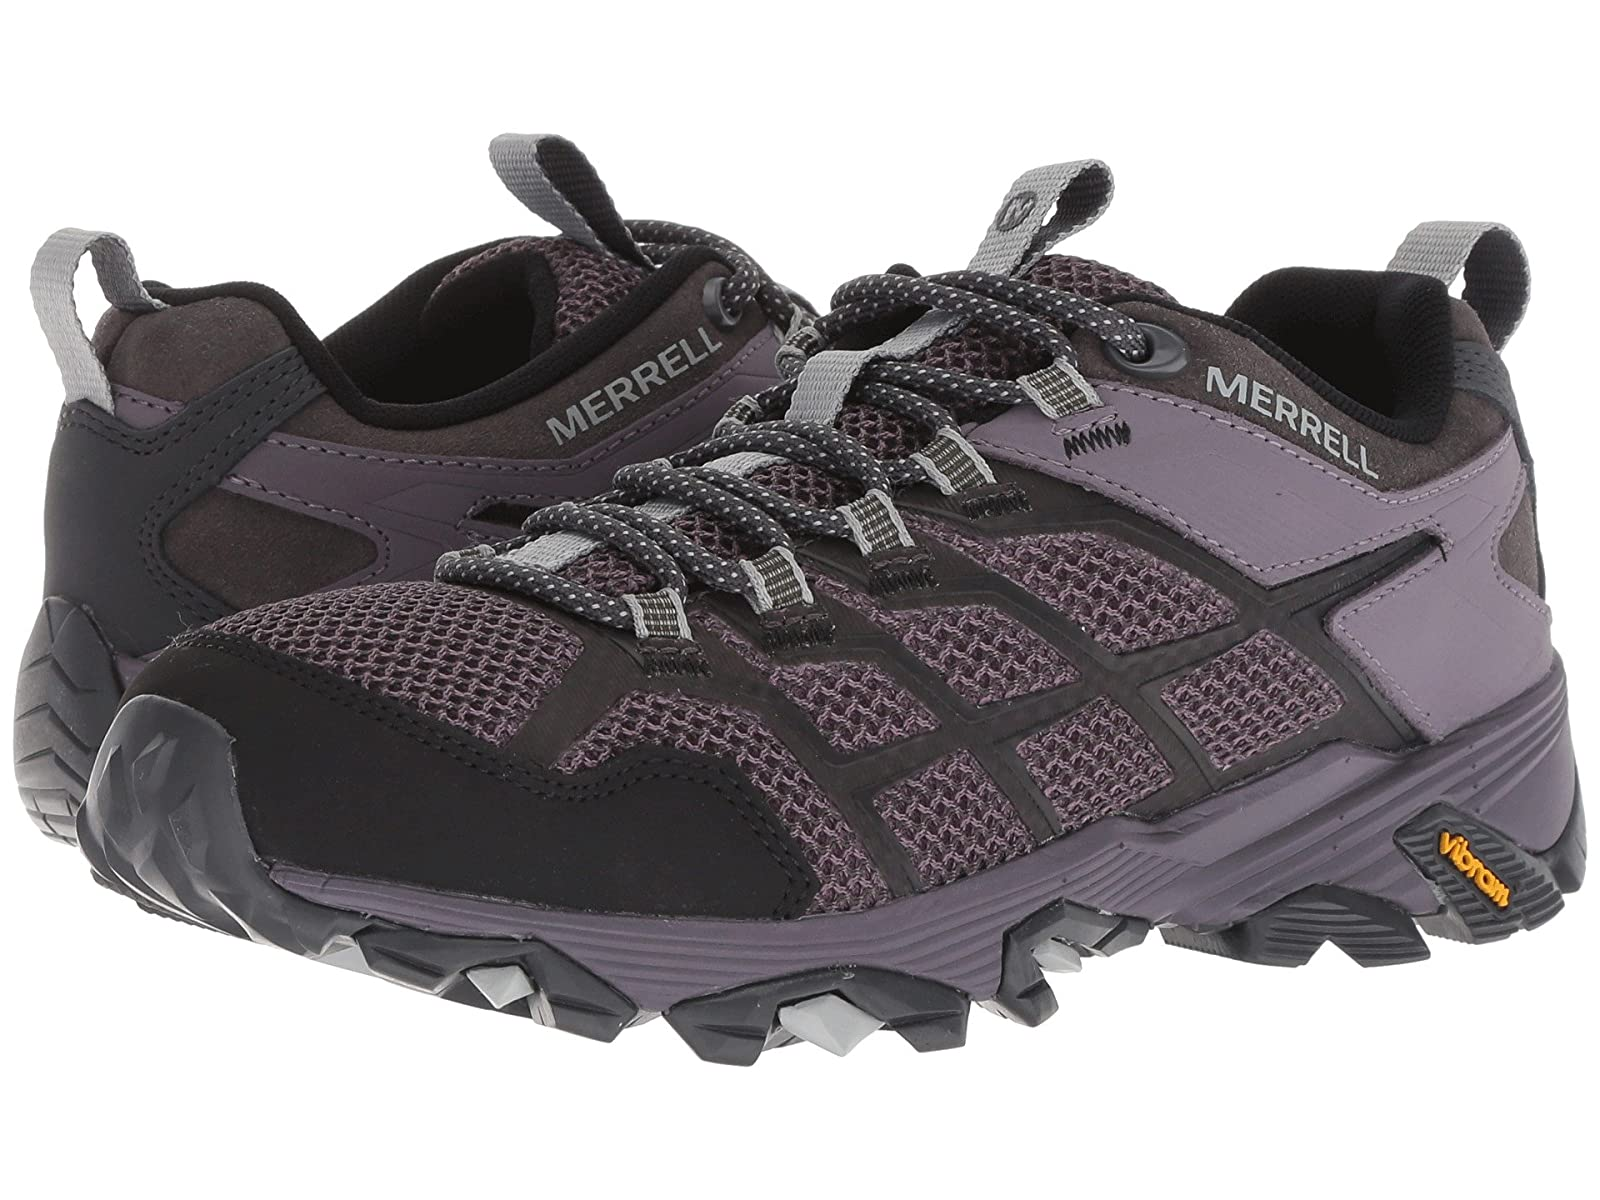 Merrell Moab FST 2Atmospheric grades have affordable shoes